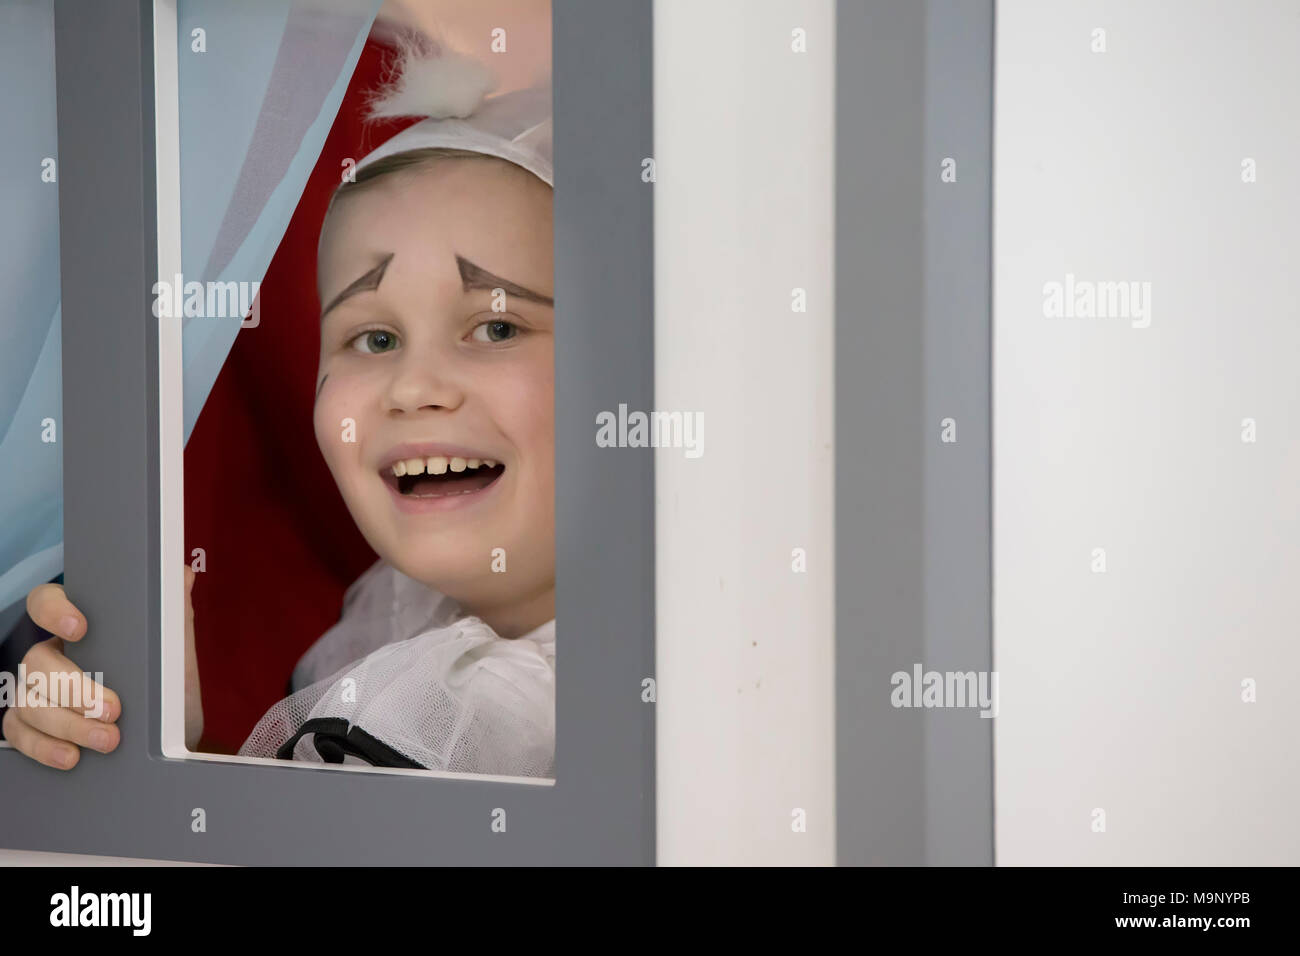 Belarus, the city of Gomel, October 30, 2017. Opening of the children's library department. - Stock Image